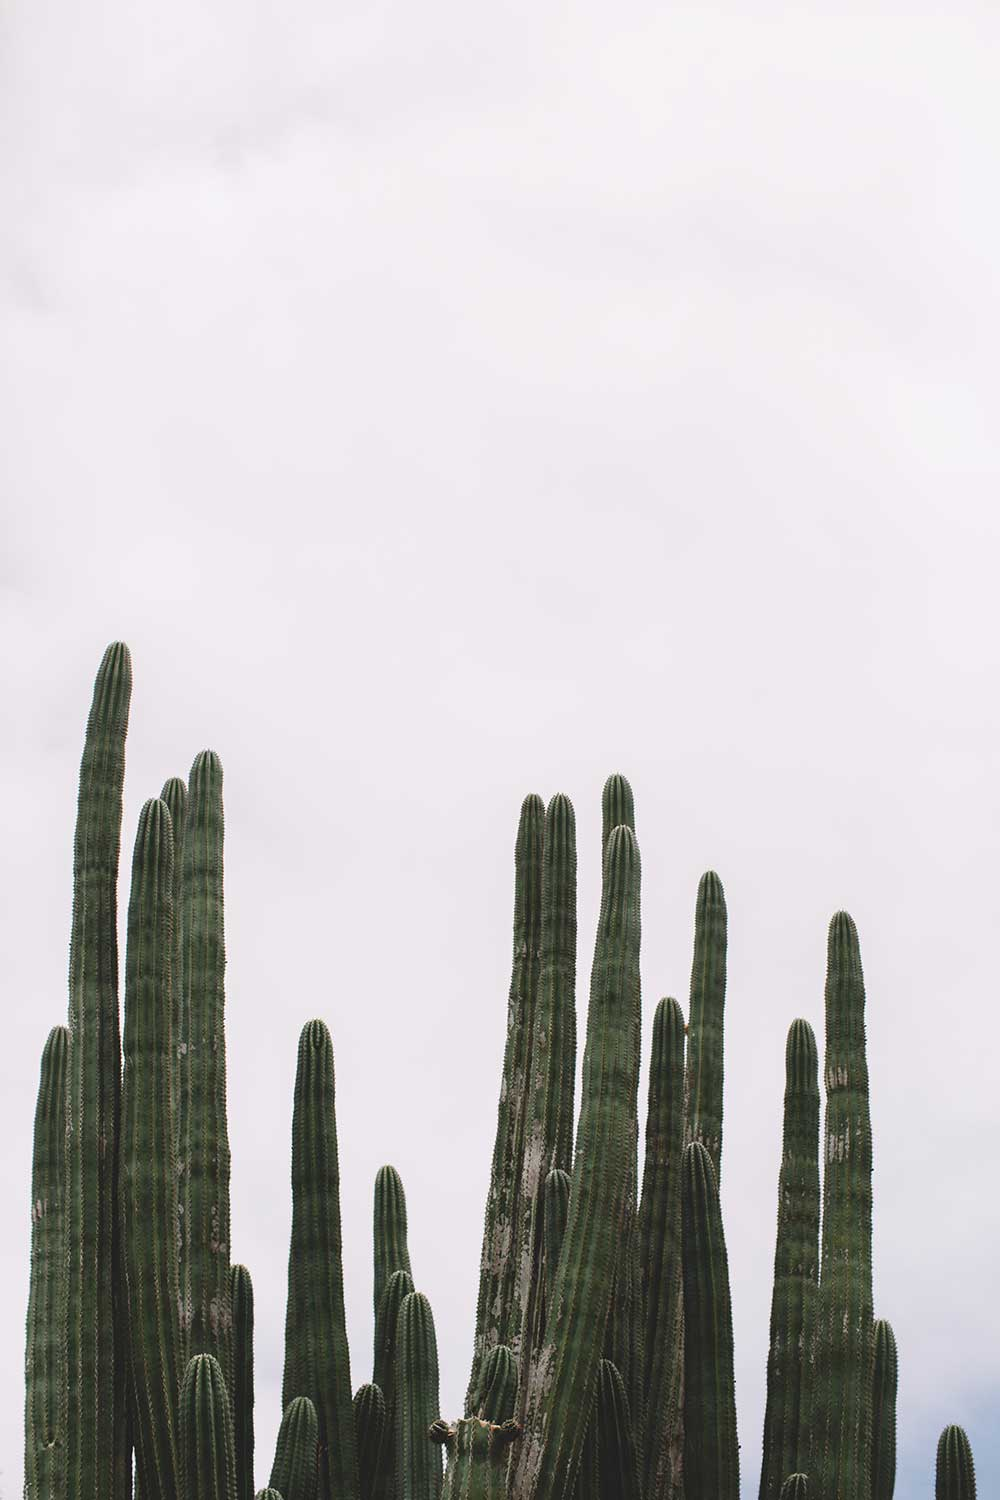 The top of cacti